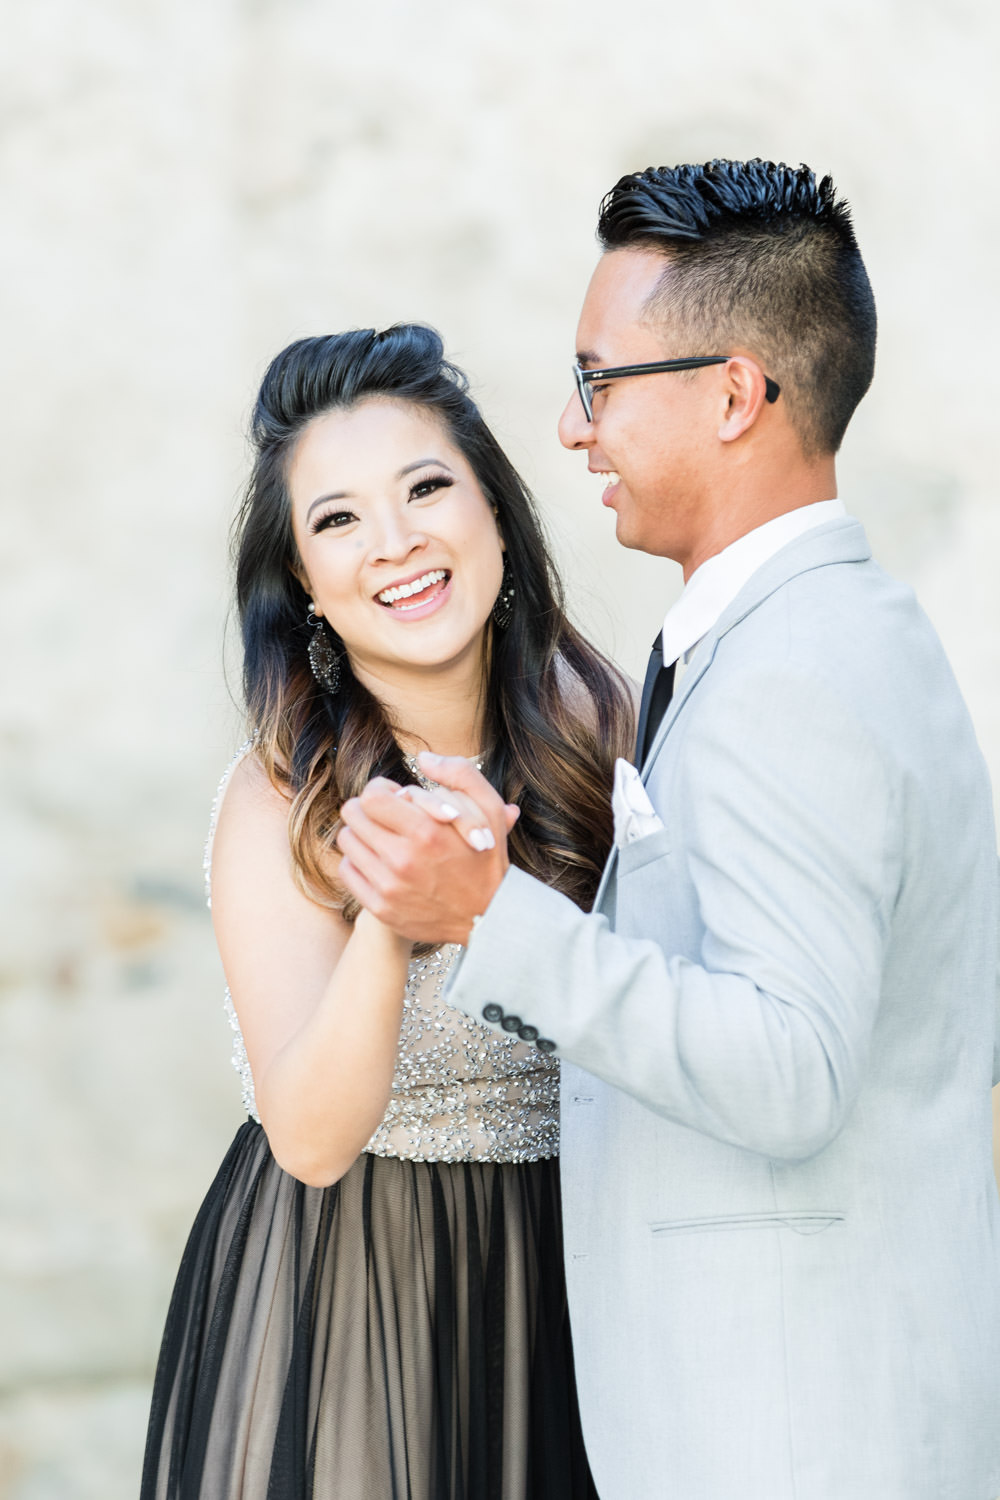 Suit and tie with black shirt and sparkly engagement outfit, Mission San Juan Capistrano Engagement Photos with ruins and weathered stone, Cavin Elizabeth Photography